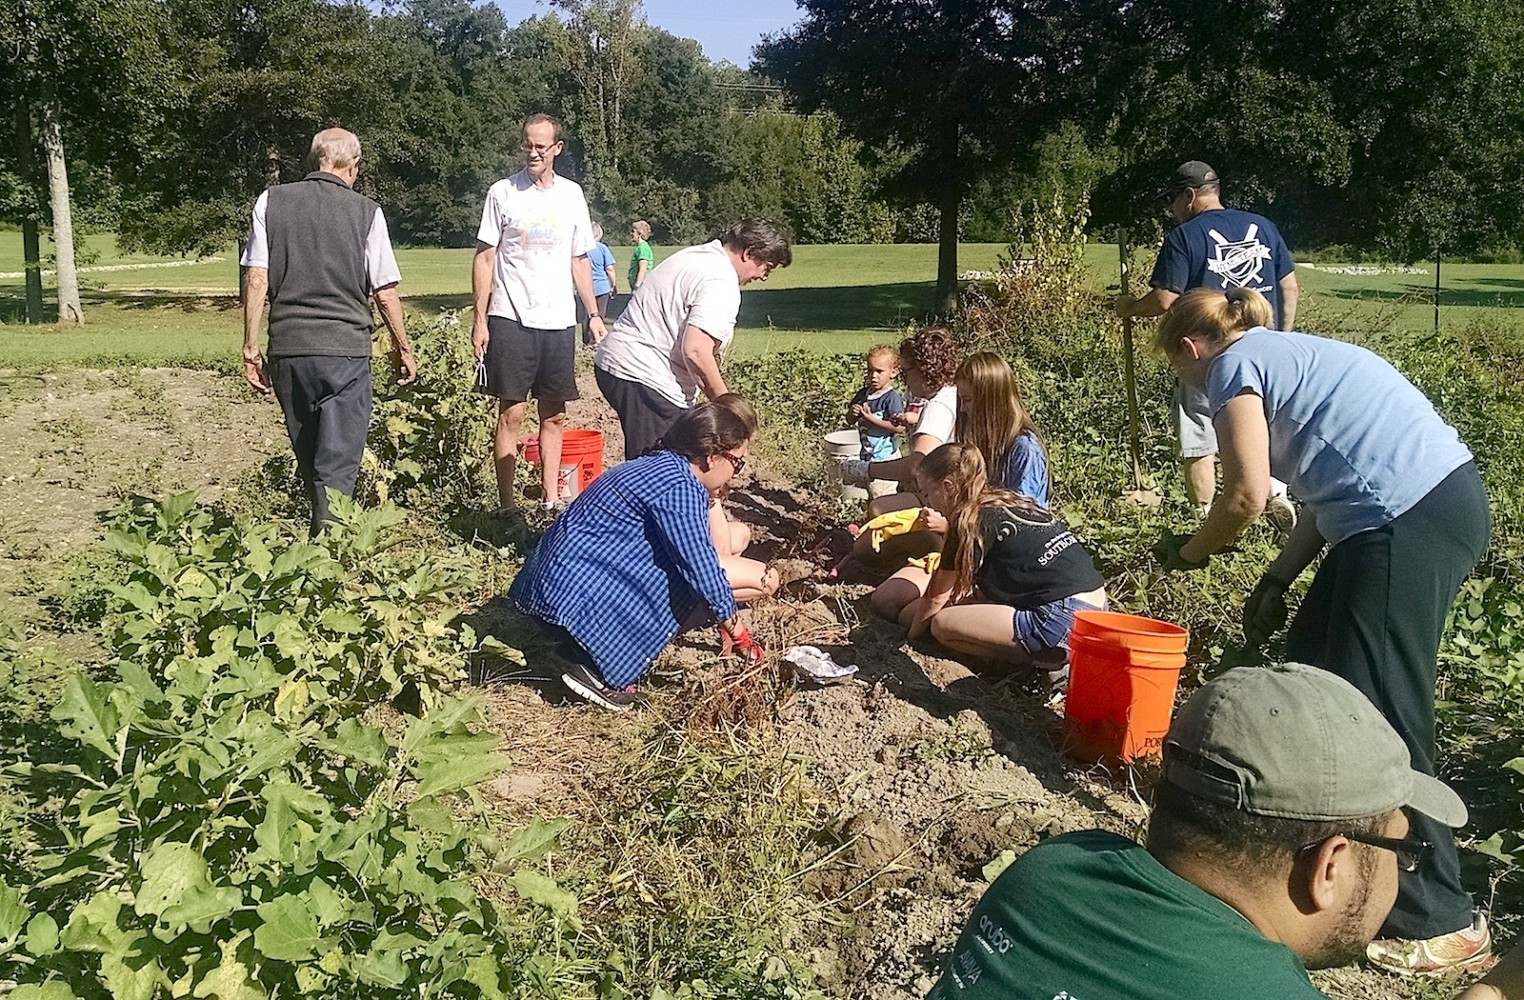 Fresh veggies bring people together at Synergy Garden in ...